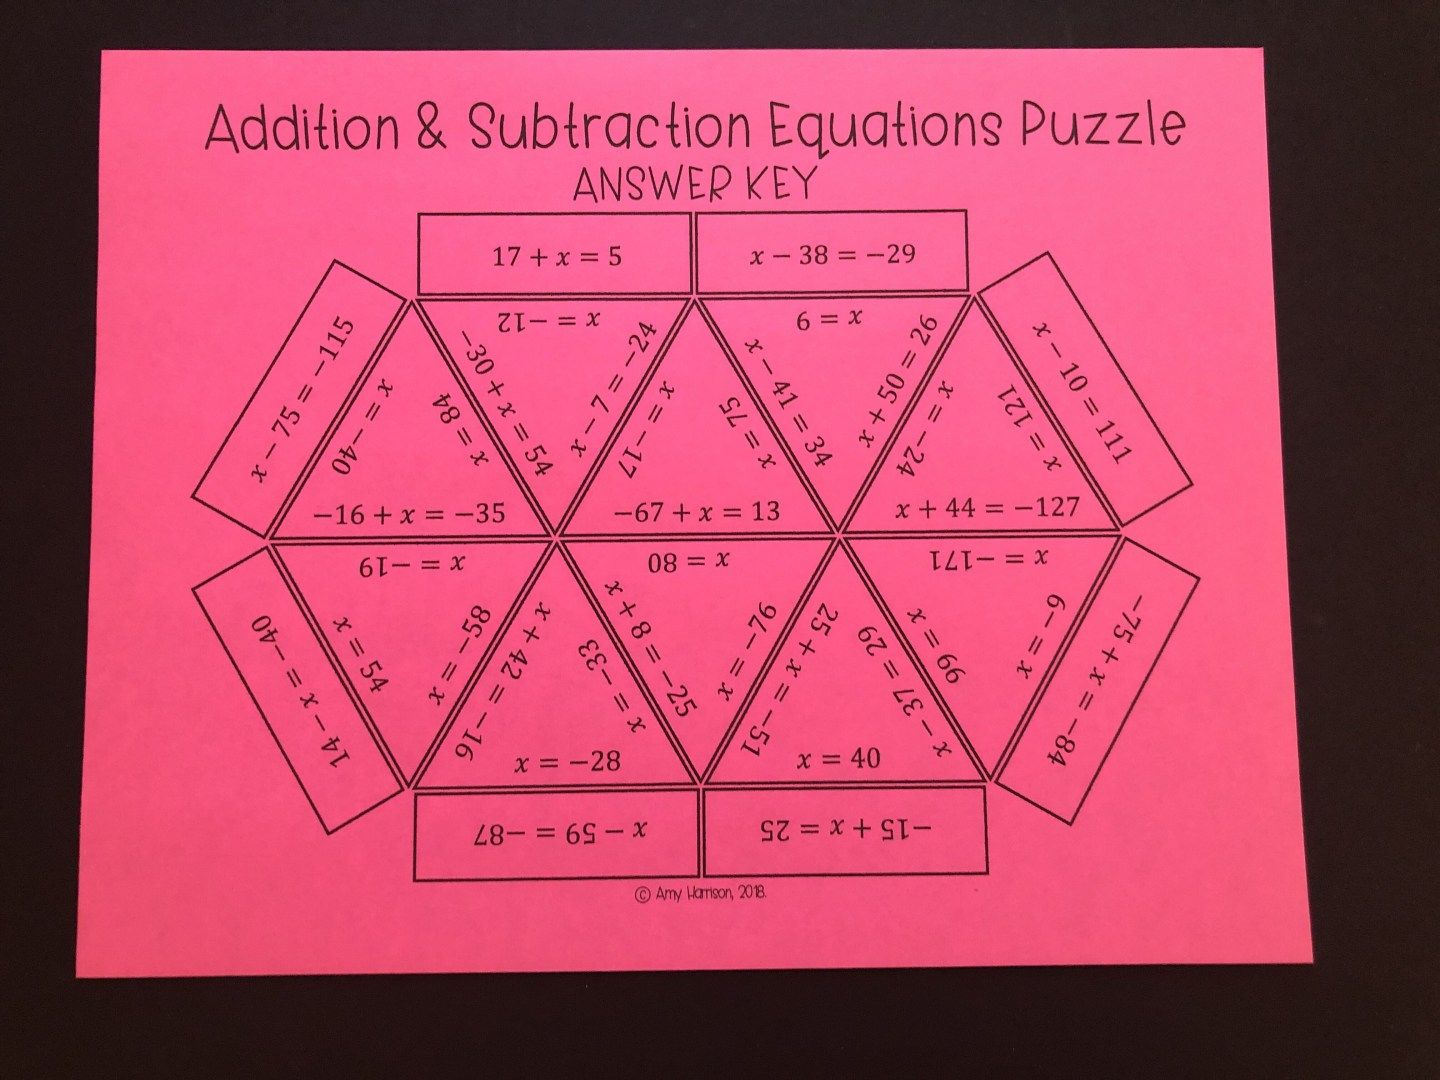 Solving Addition And Subtraction Equations Puzzle With